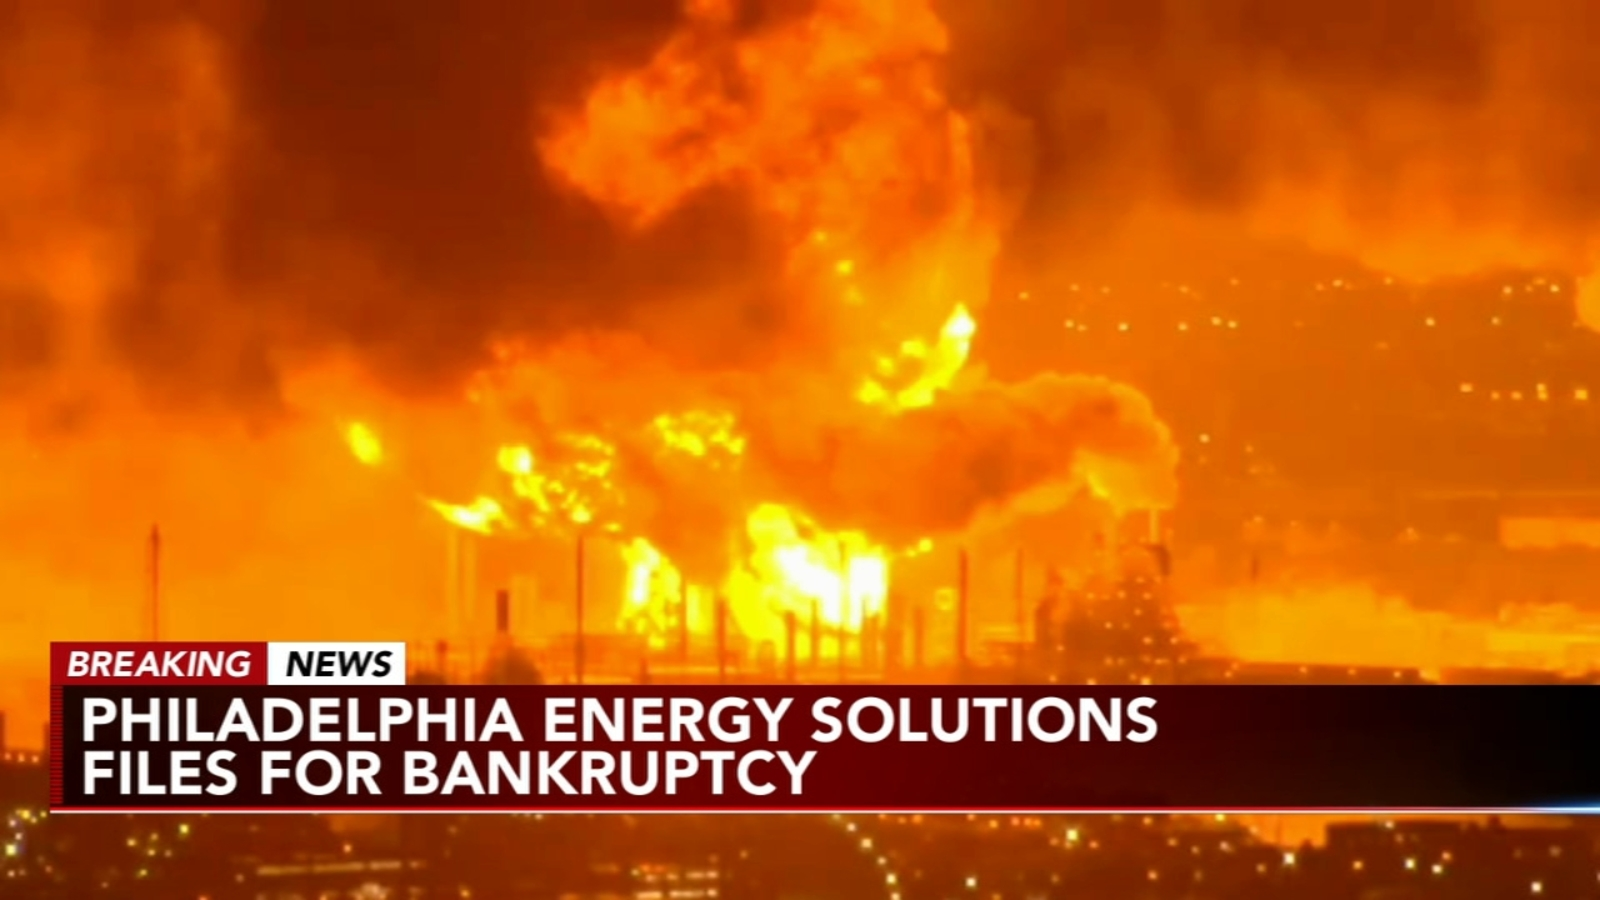 Philadelphia Energy Solutions files for bankruptcy after refinery explosion and fire